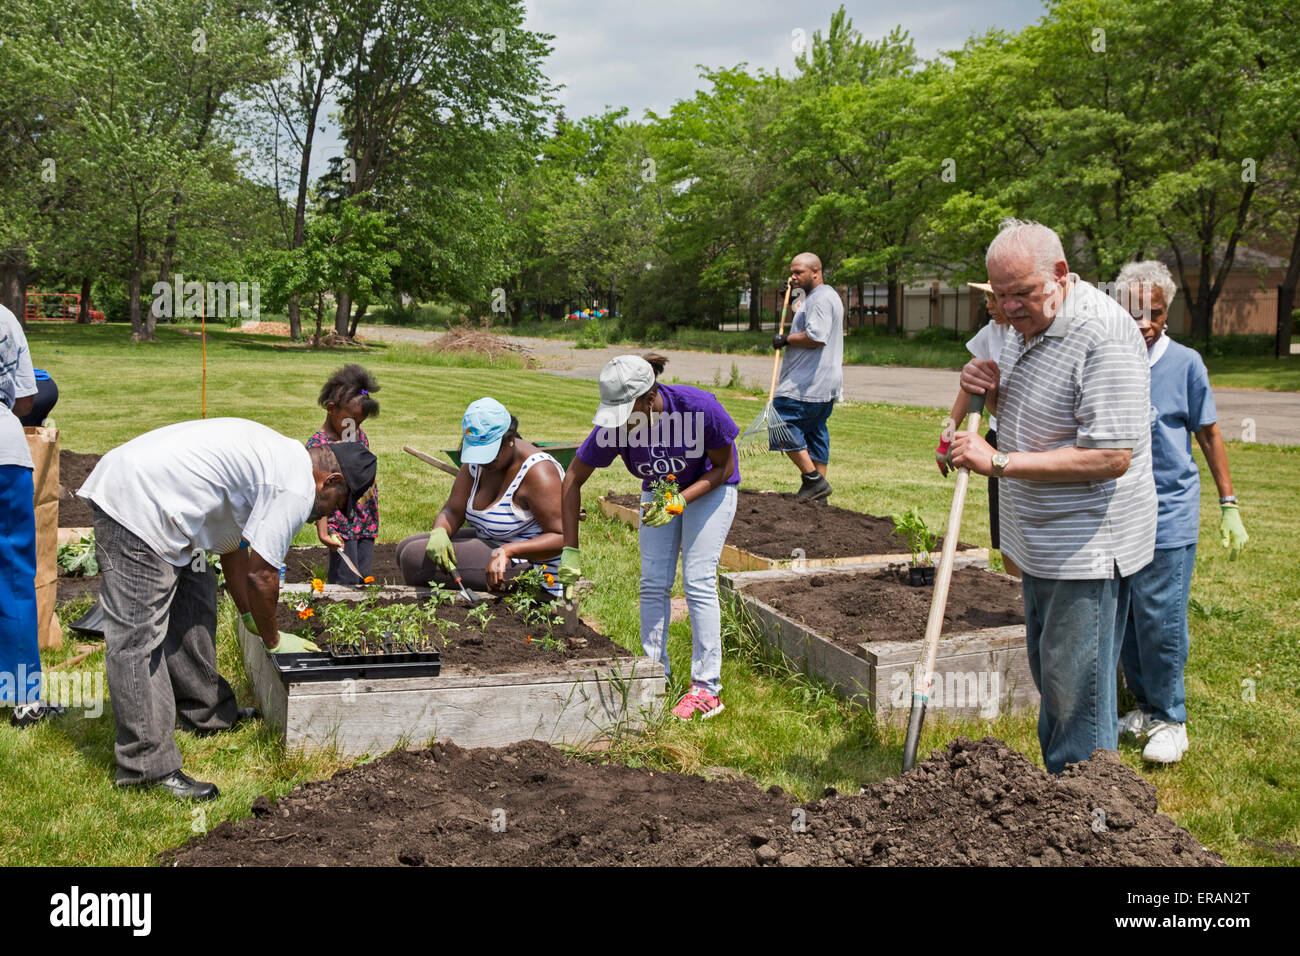 Detroit, Michigan - Members of St. John's Presbyterian Church plant a community garden. - Stock Image